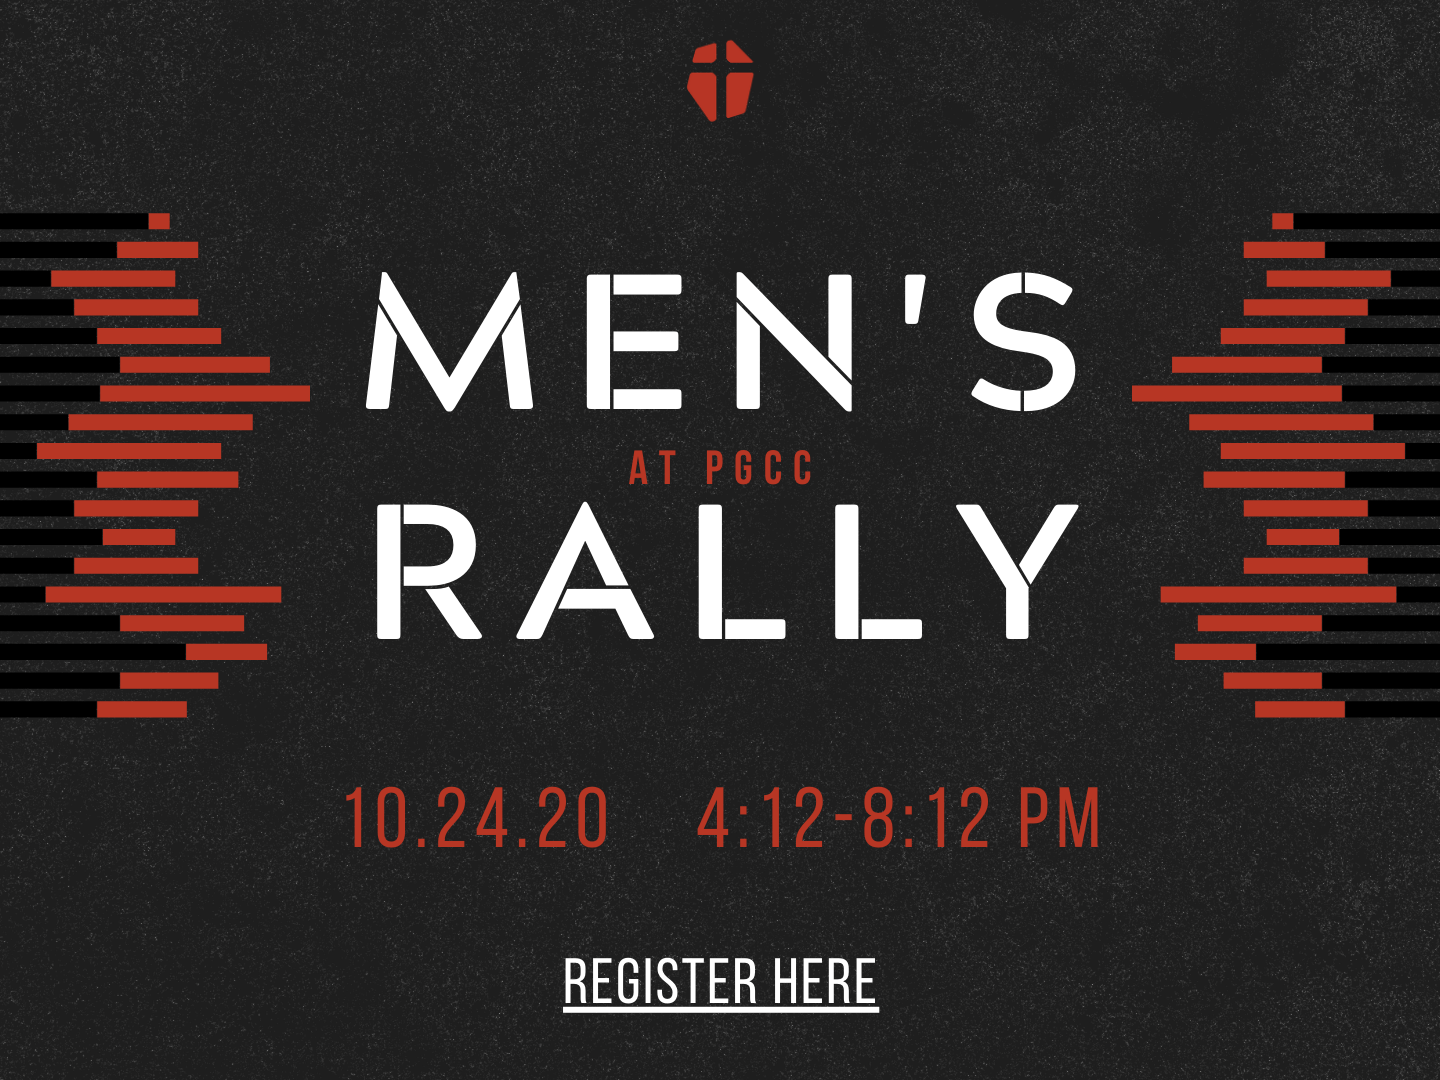 Men's Rally_web (1)